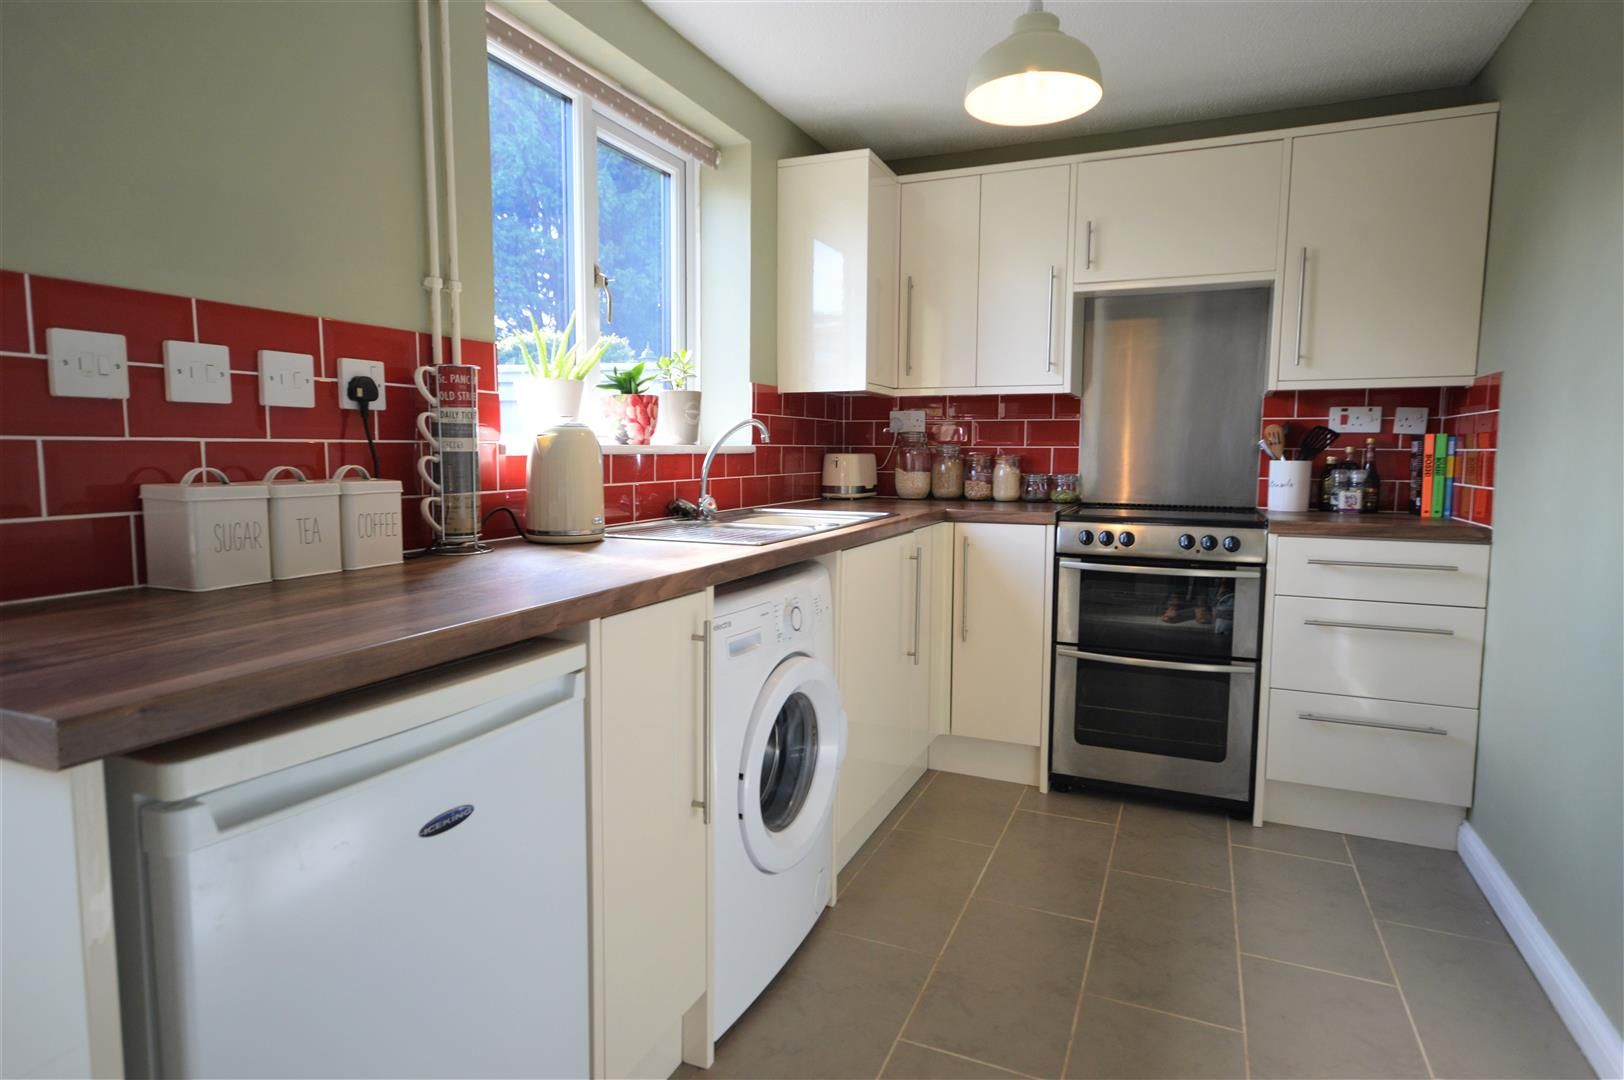 2 bed end-of-terrace for sale in Leominster 2